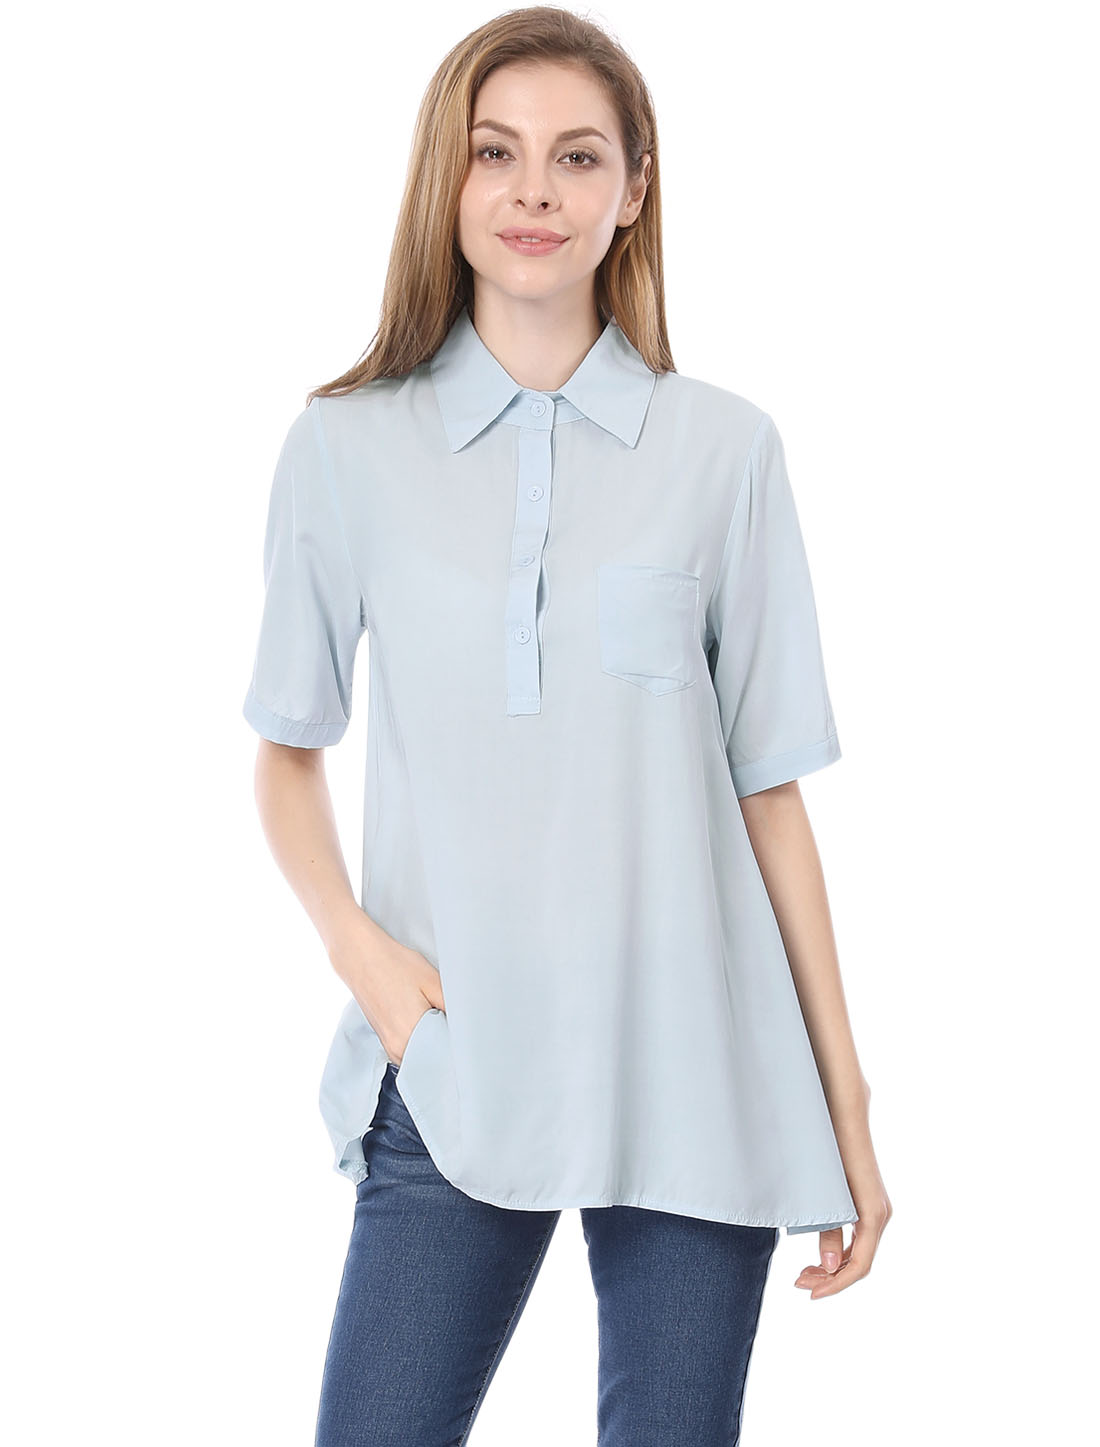 Women Casual Soft 1/2 Placket Irregular Hem Loose Shirt Light Blue S